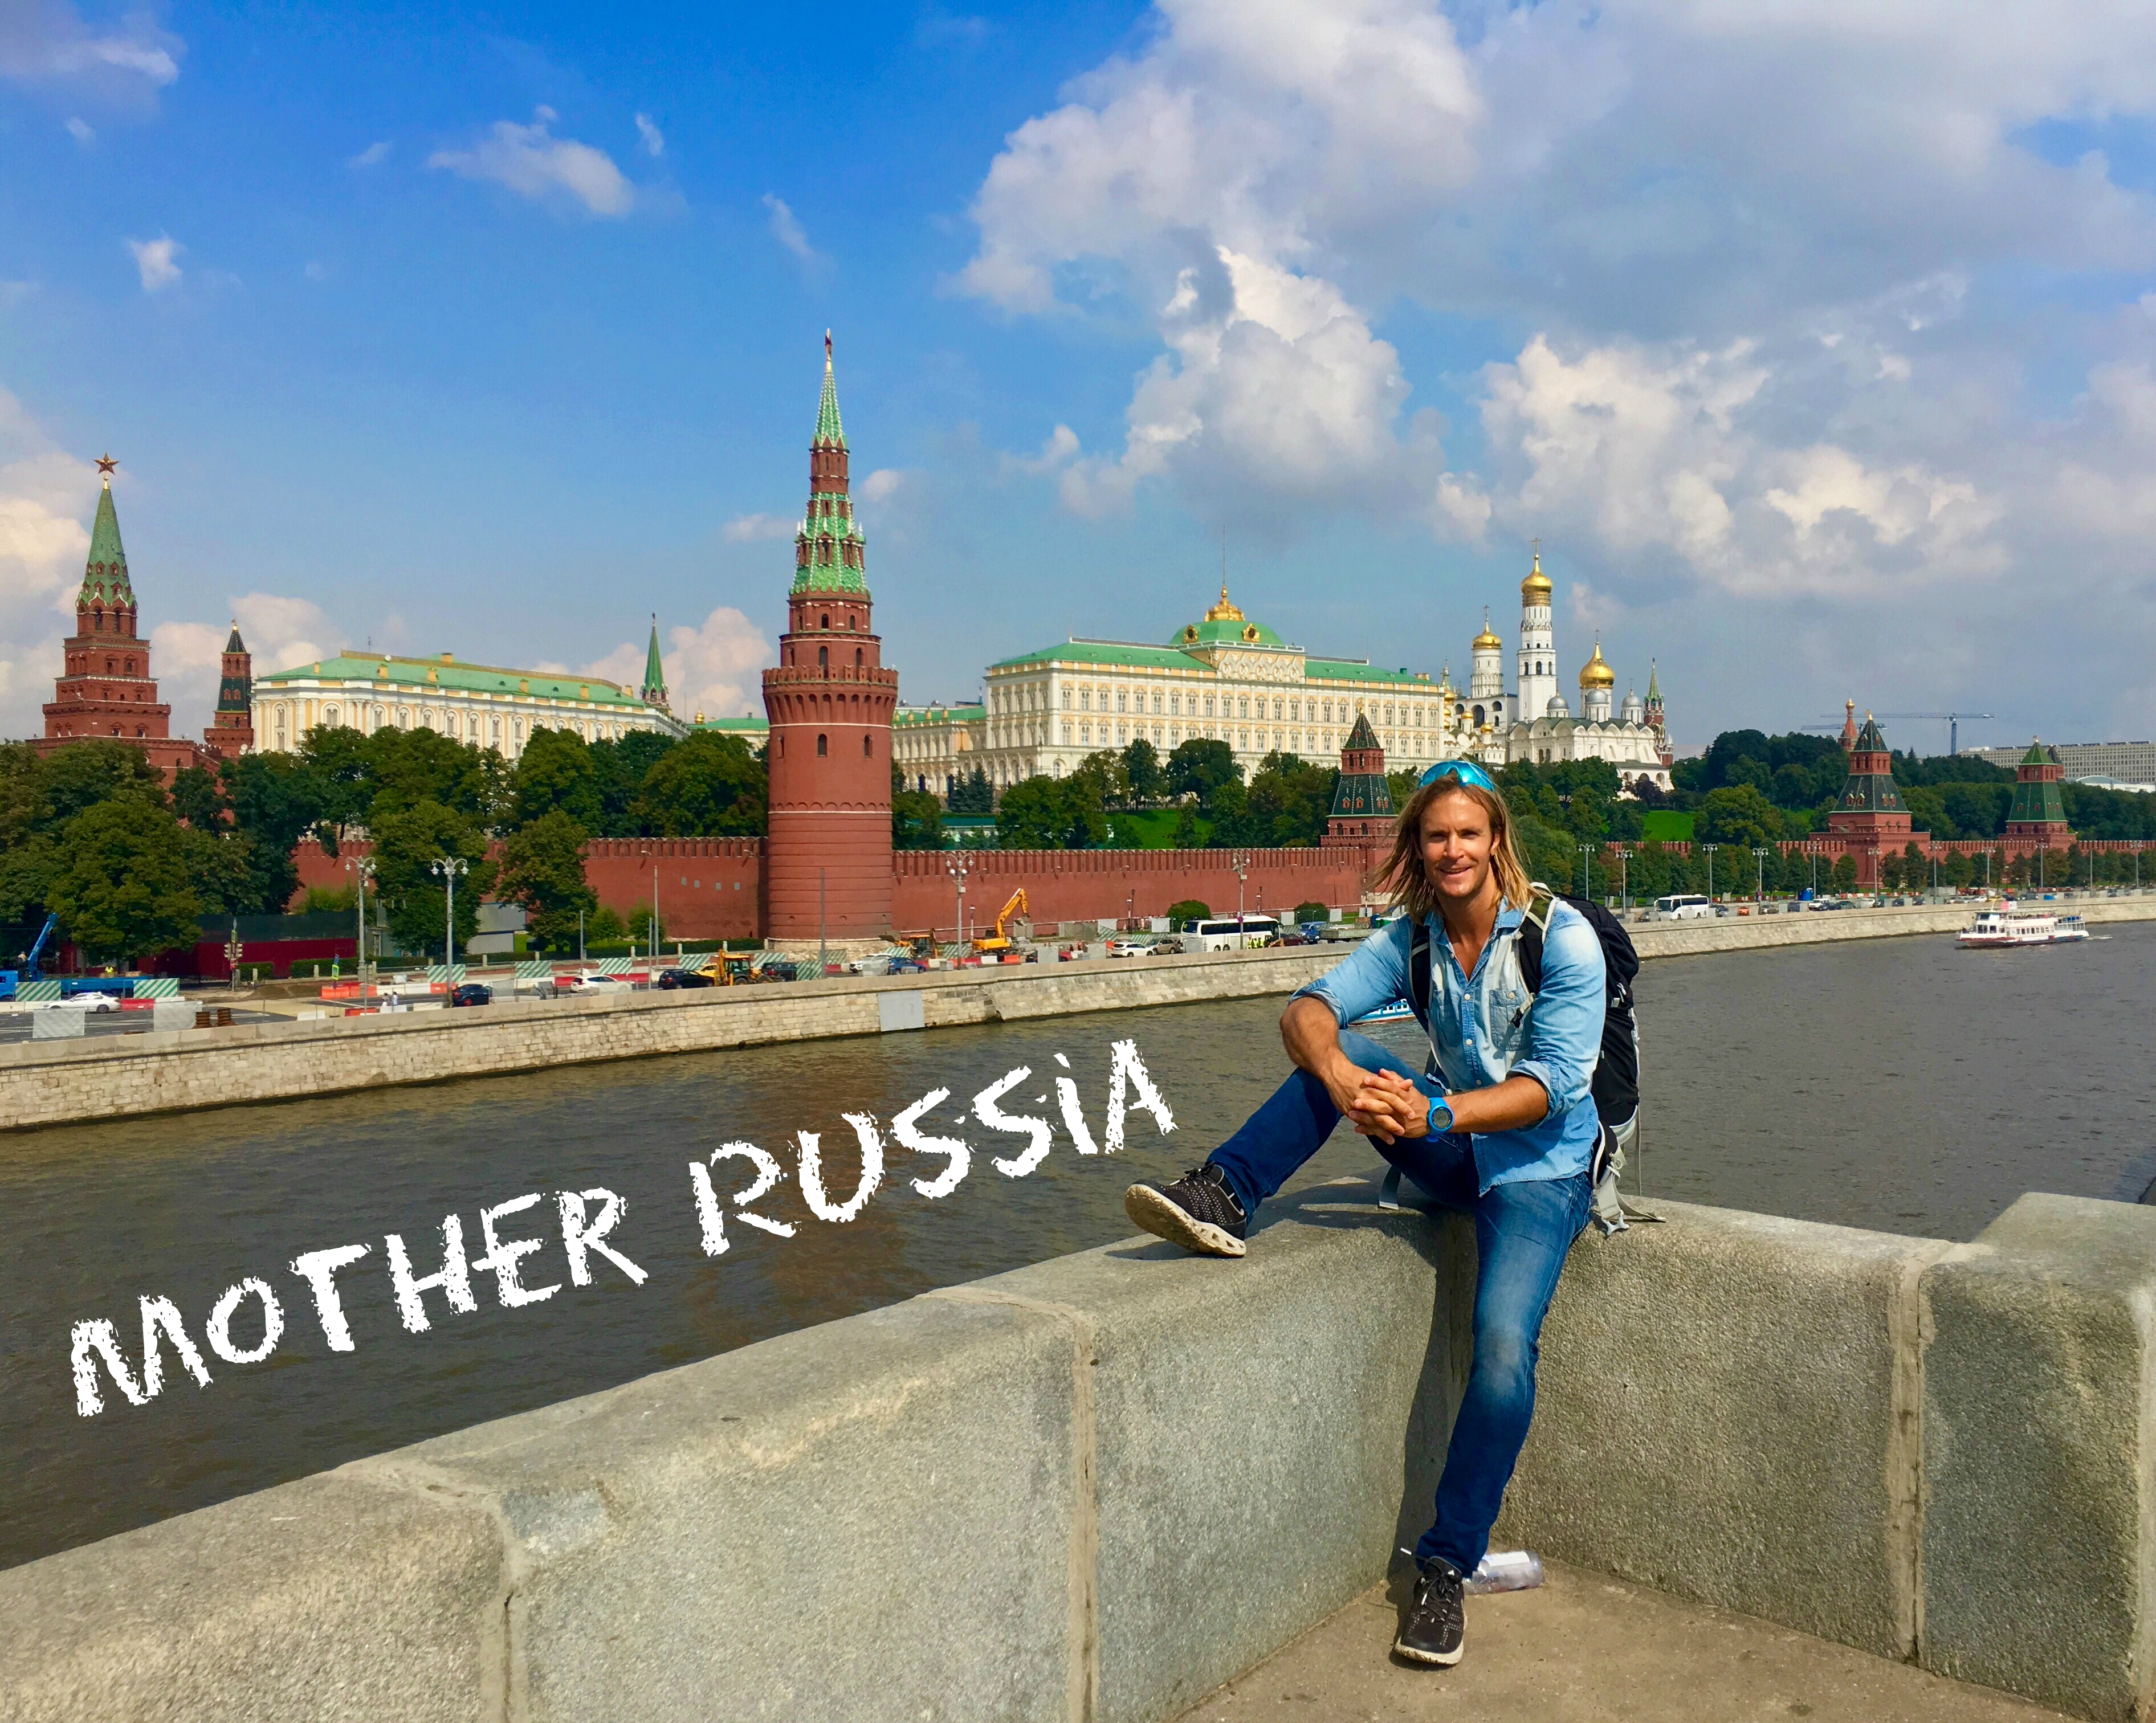 Planning a 3-4 day weekend get away this autumn? Forget Paris and London! Moscow is extremely beautiful and now the currency is very weak, which makes this usually expensive city a bargain now.